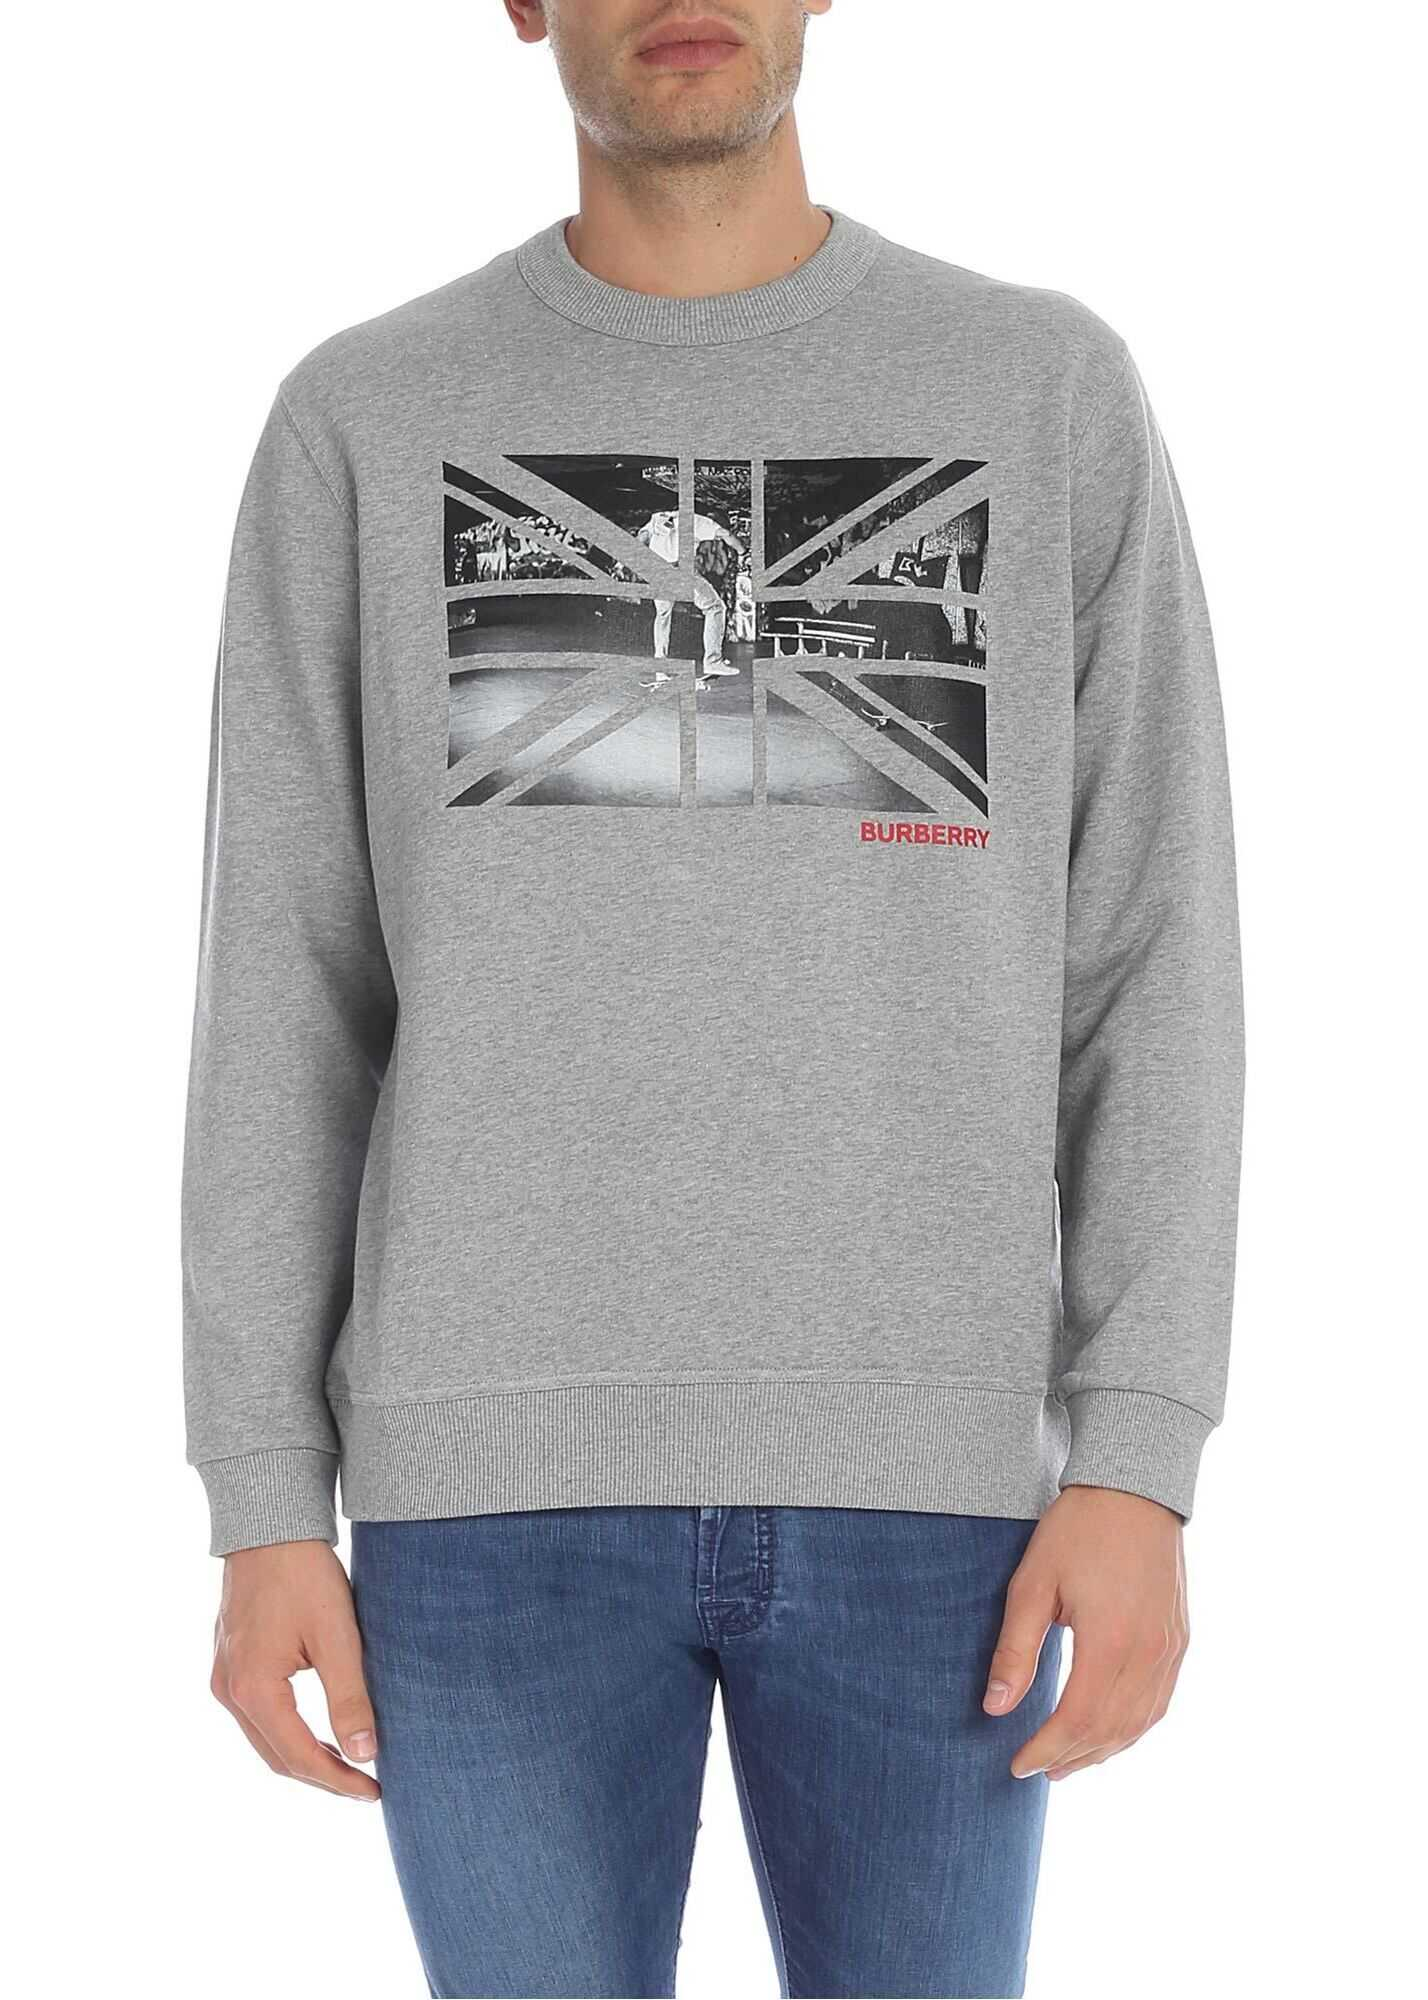 Burberry Kershaw Sweatshirt In Grey Grey